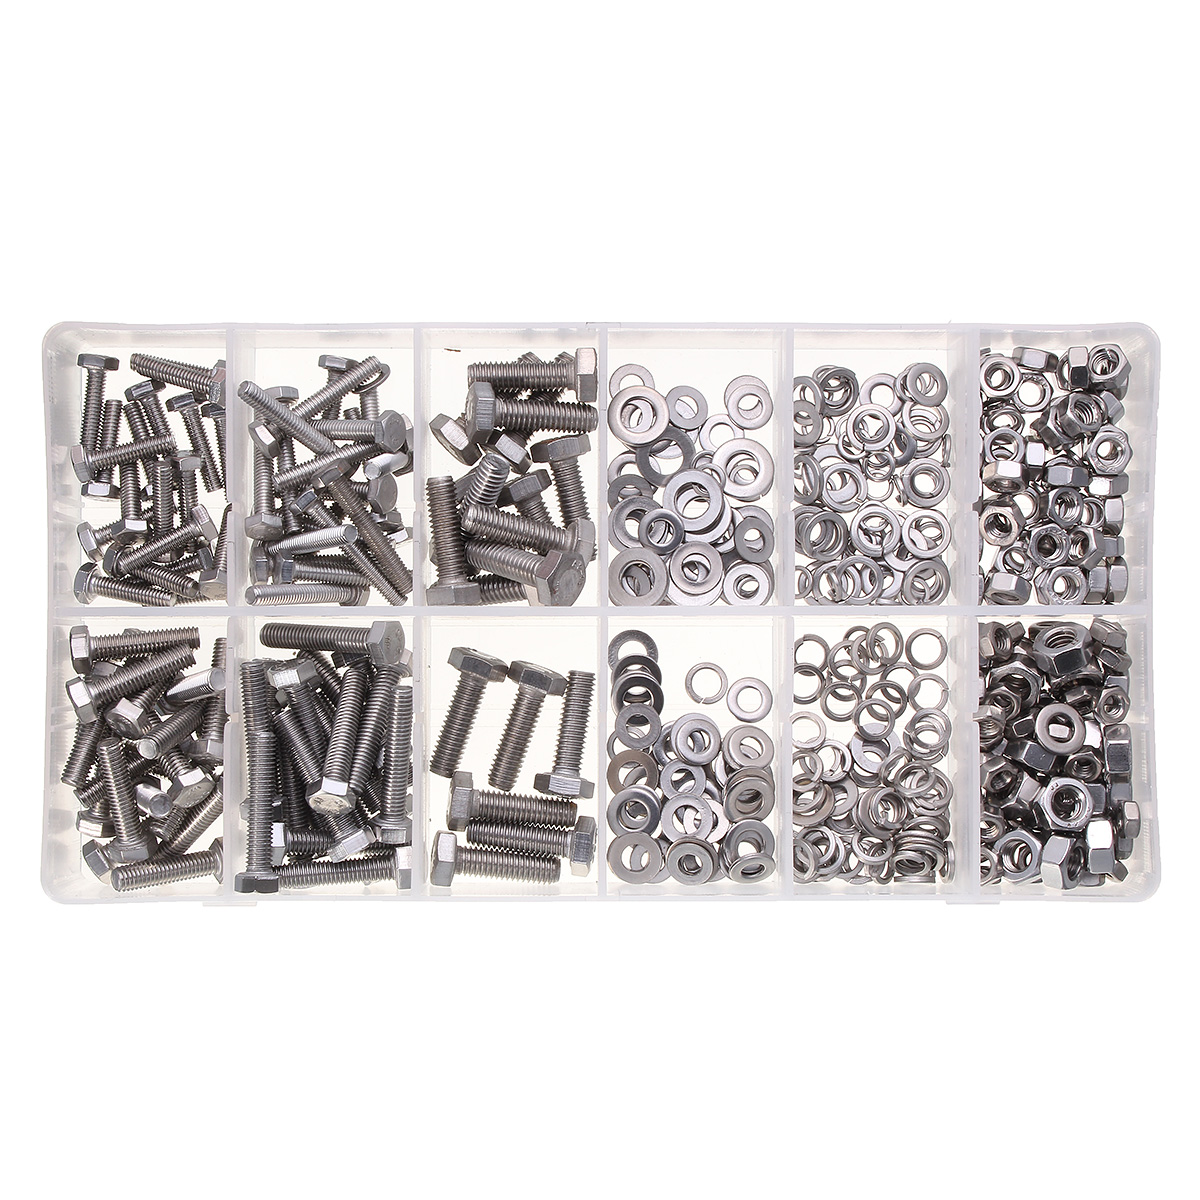 M4/M5/M6 Stainless Steel Metric Bolts Head Cap Hexagon Socket Nuts Screws with Flat Washers